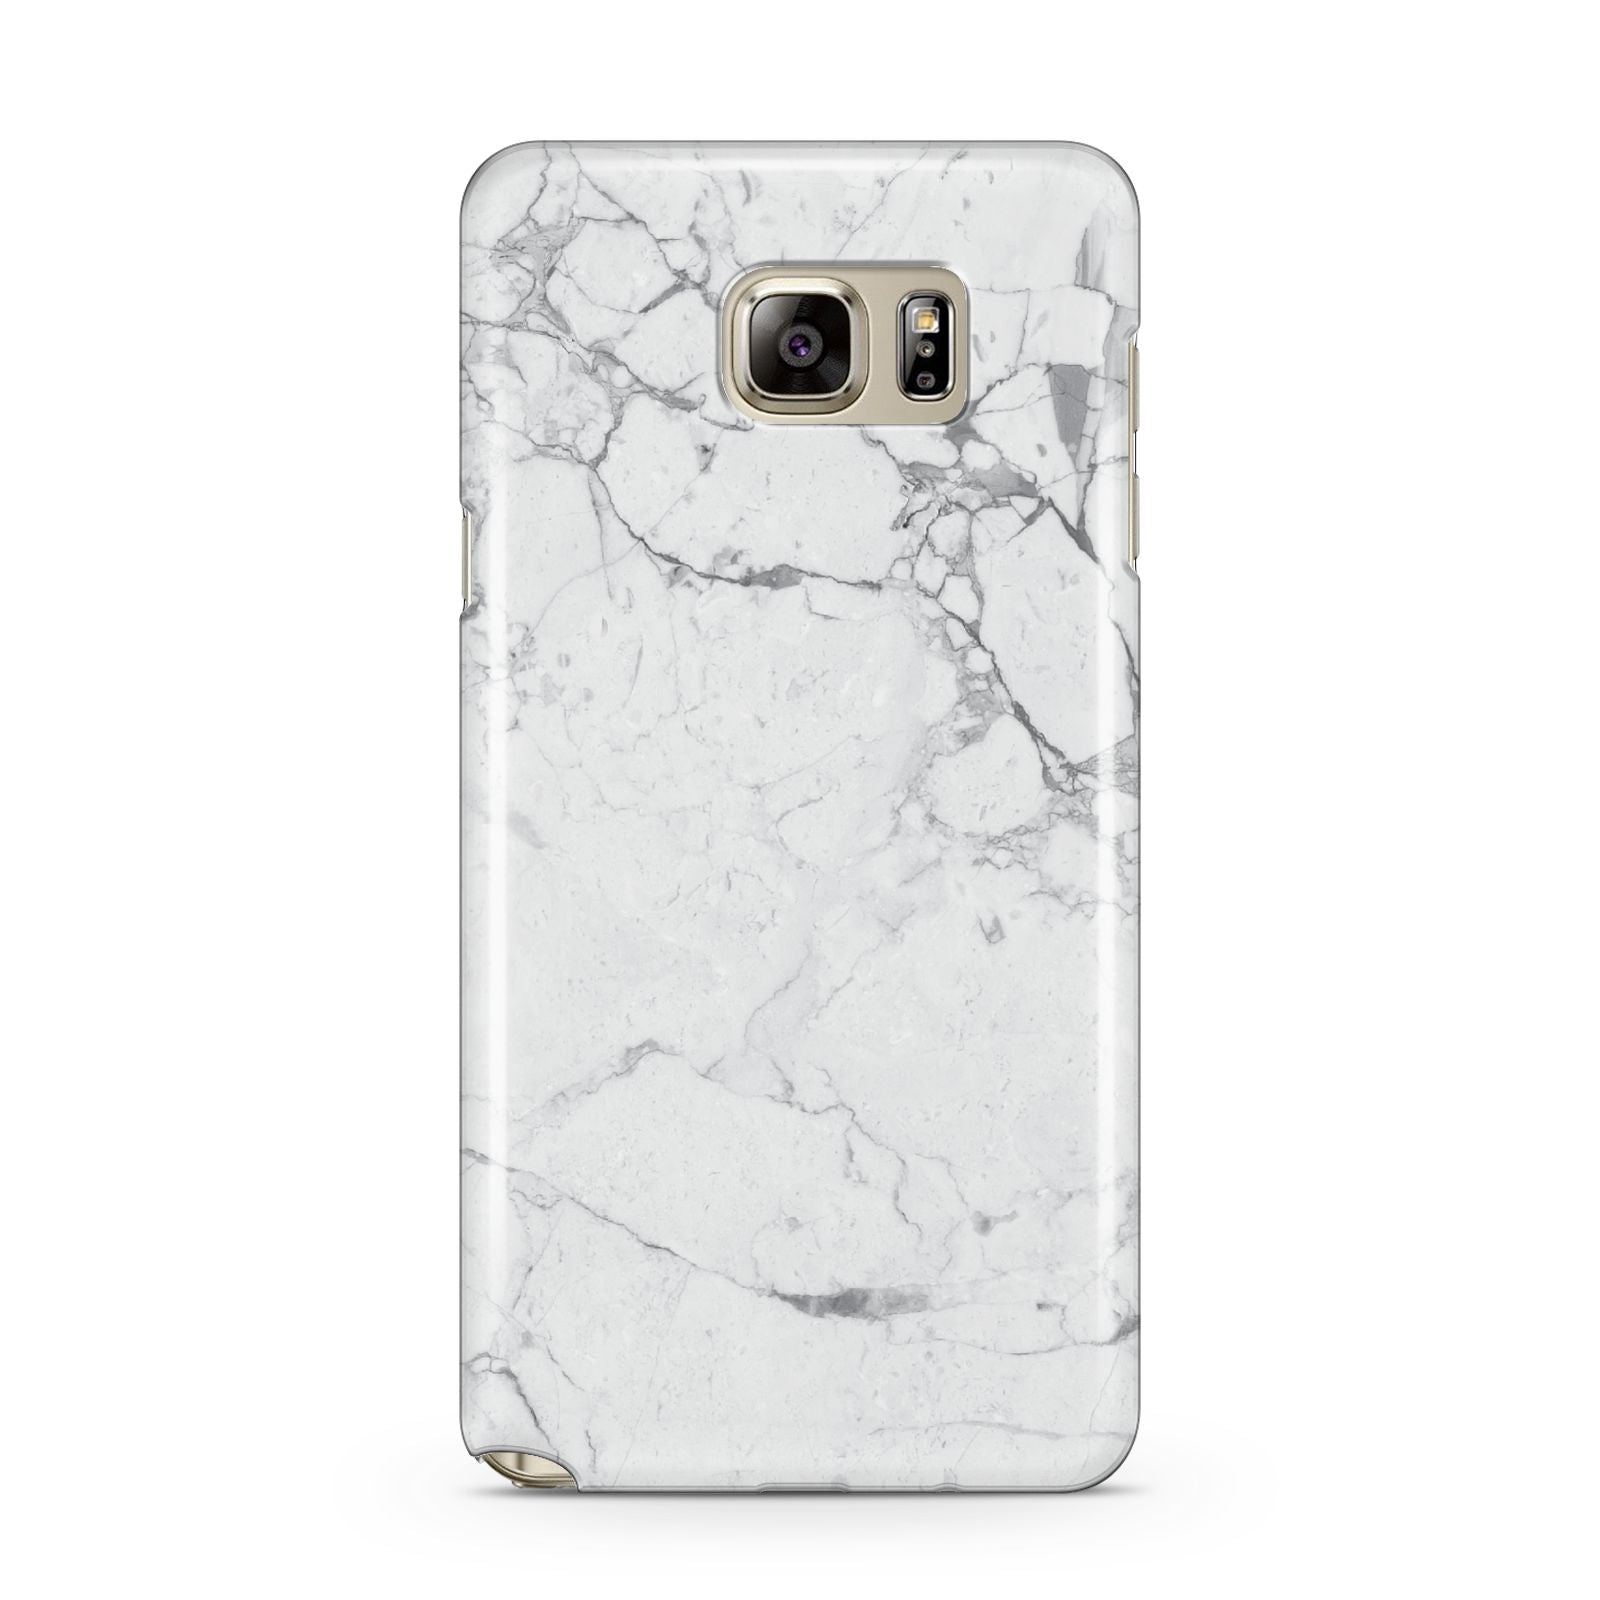 Faux Marble Effect Grey White Samsung Galaxy Note 5 Case